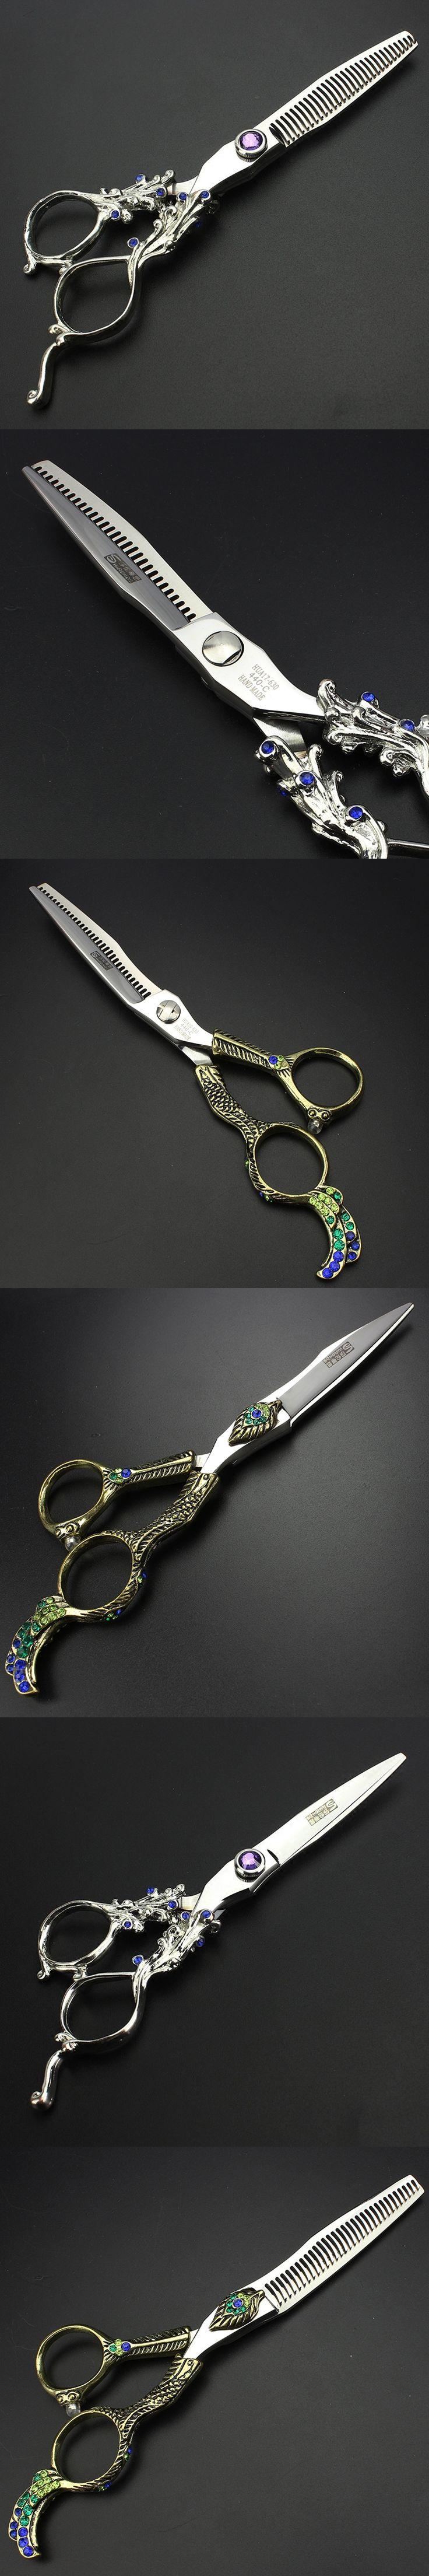 6 inch Color diamond hair scissors  hairdressing tool barber shop supplies hair shears for hairdresser making coiffure 4 design